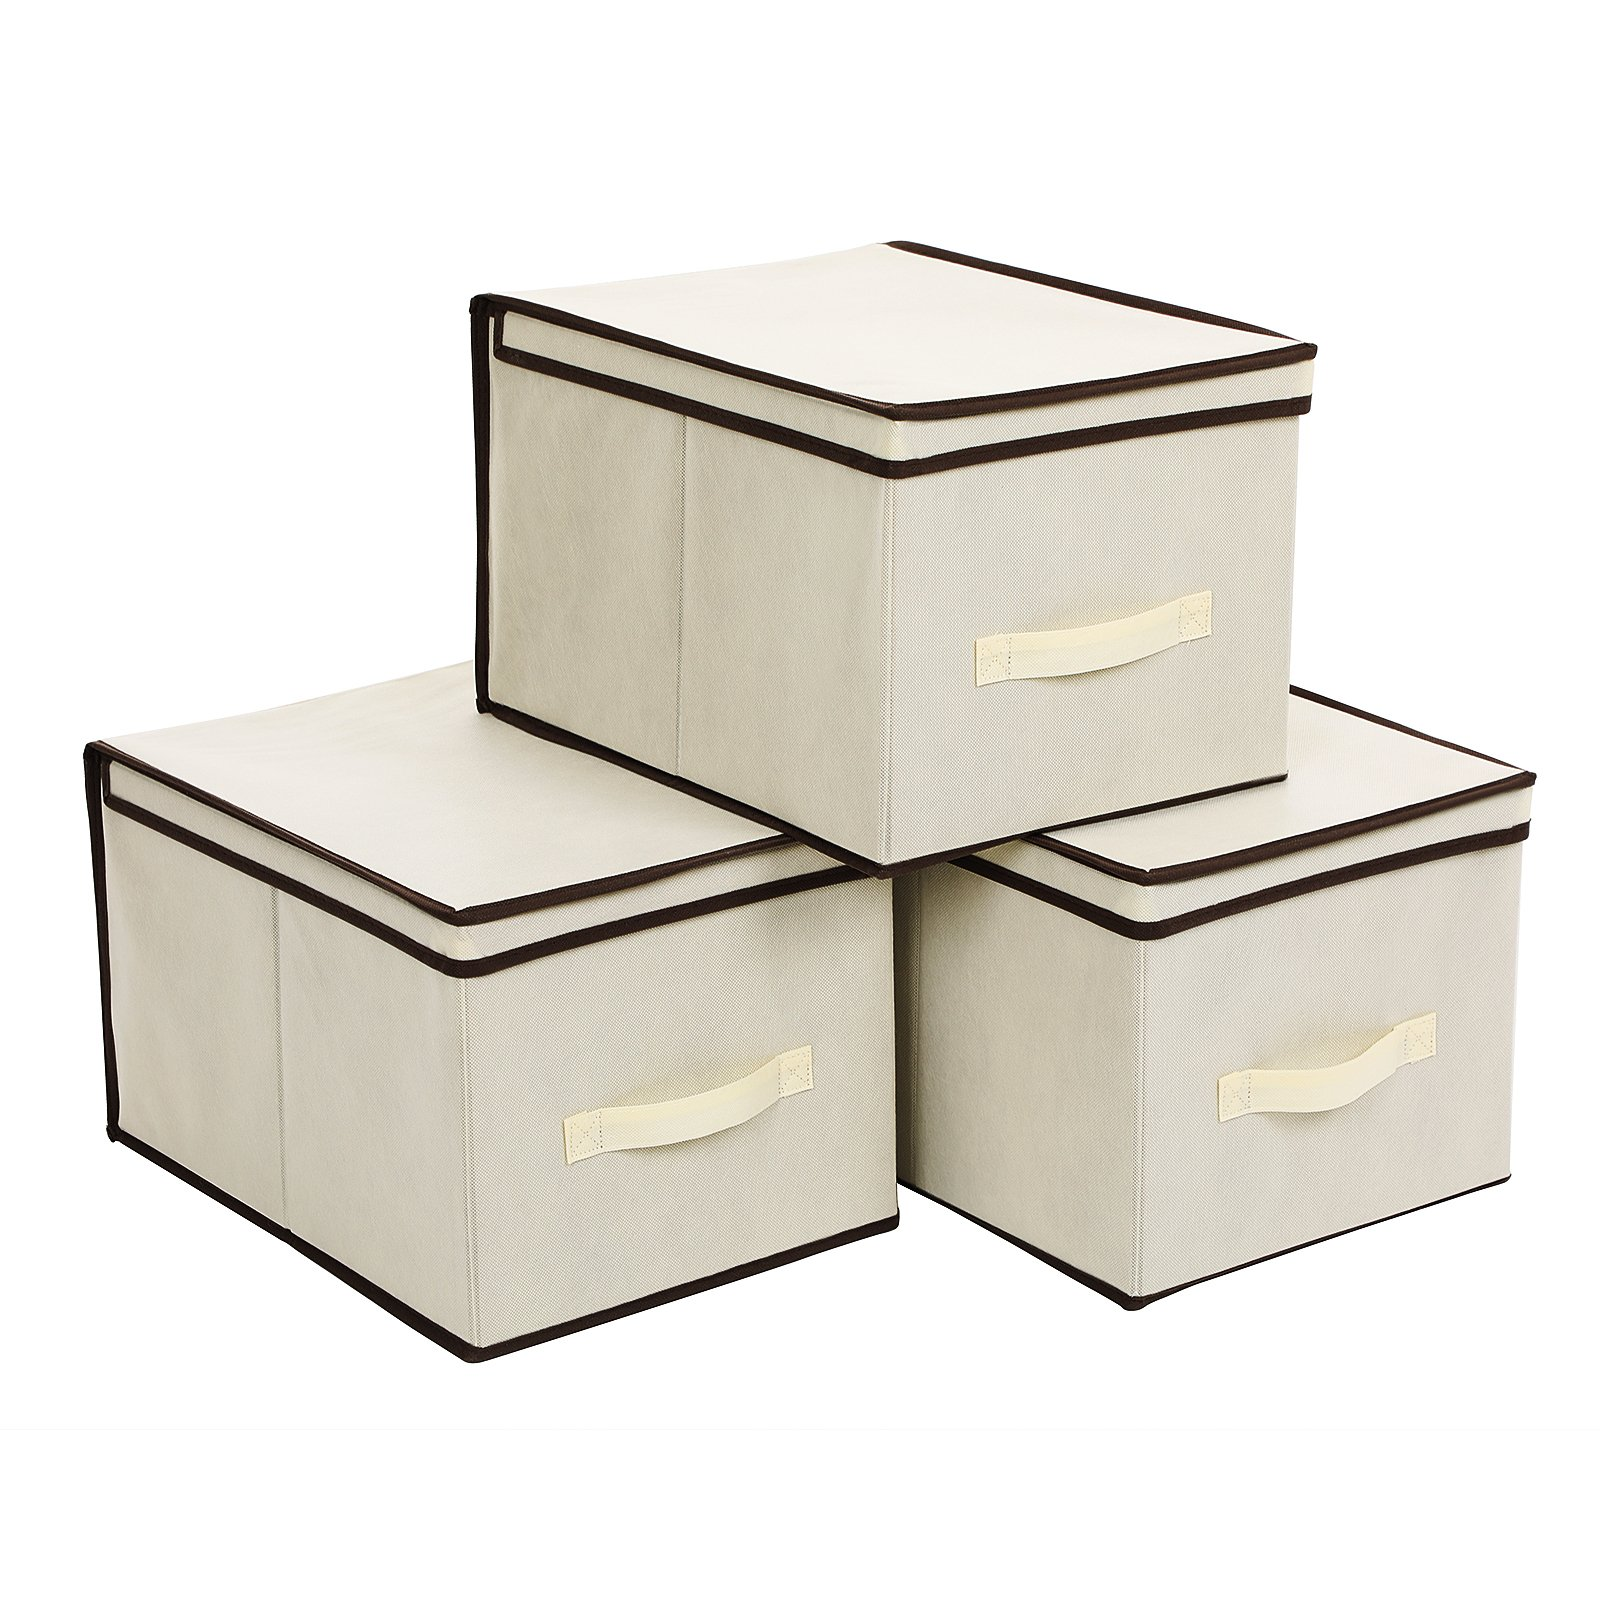 SONGMICS Set of 3 Large Storage Container with Lids Foldable Storage Box with Lids Beige URLB40M